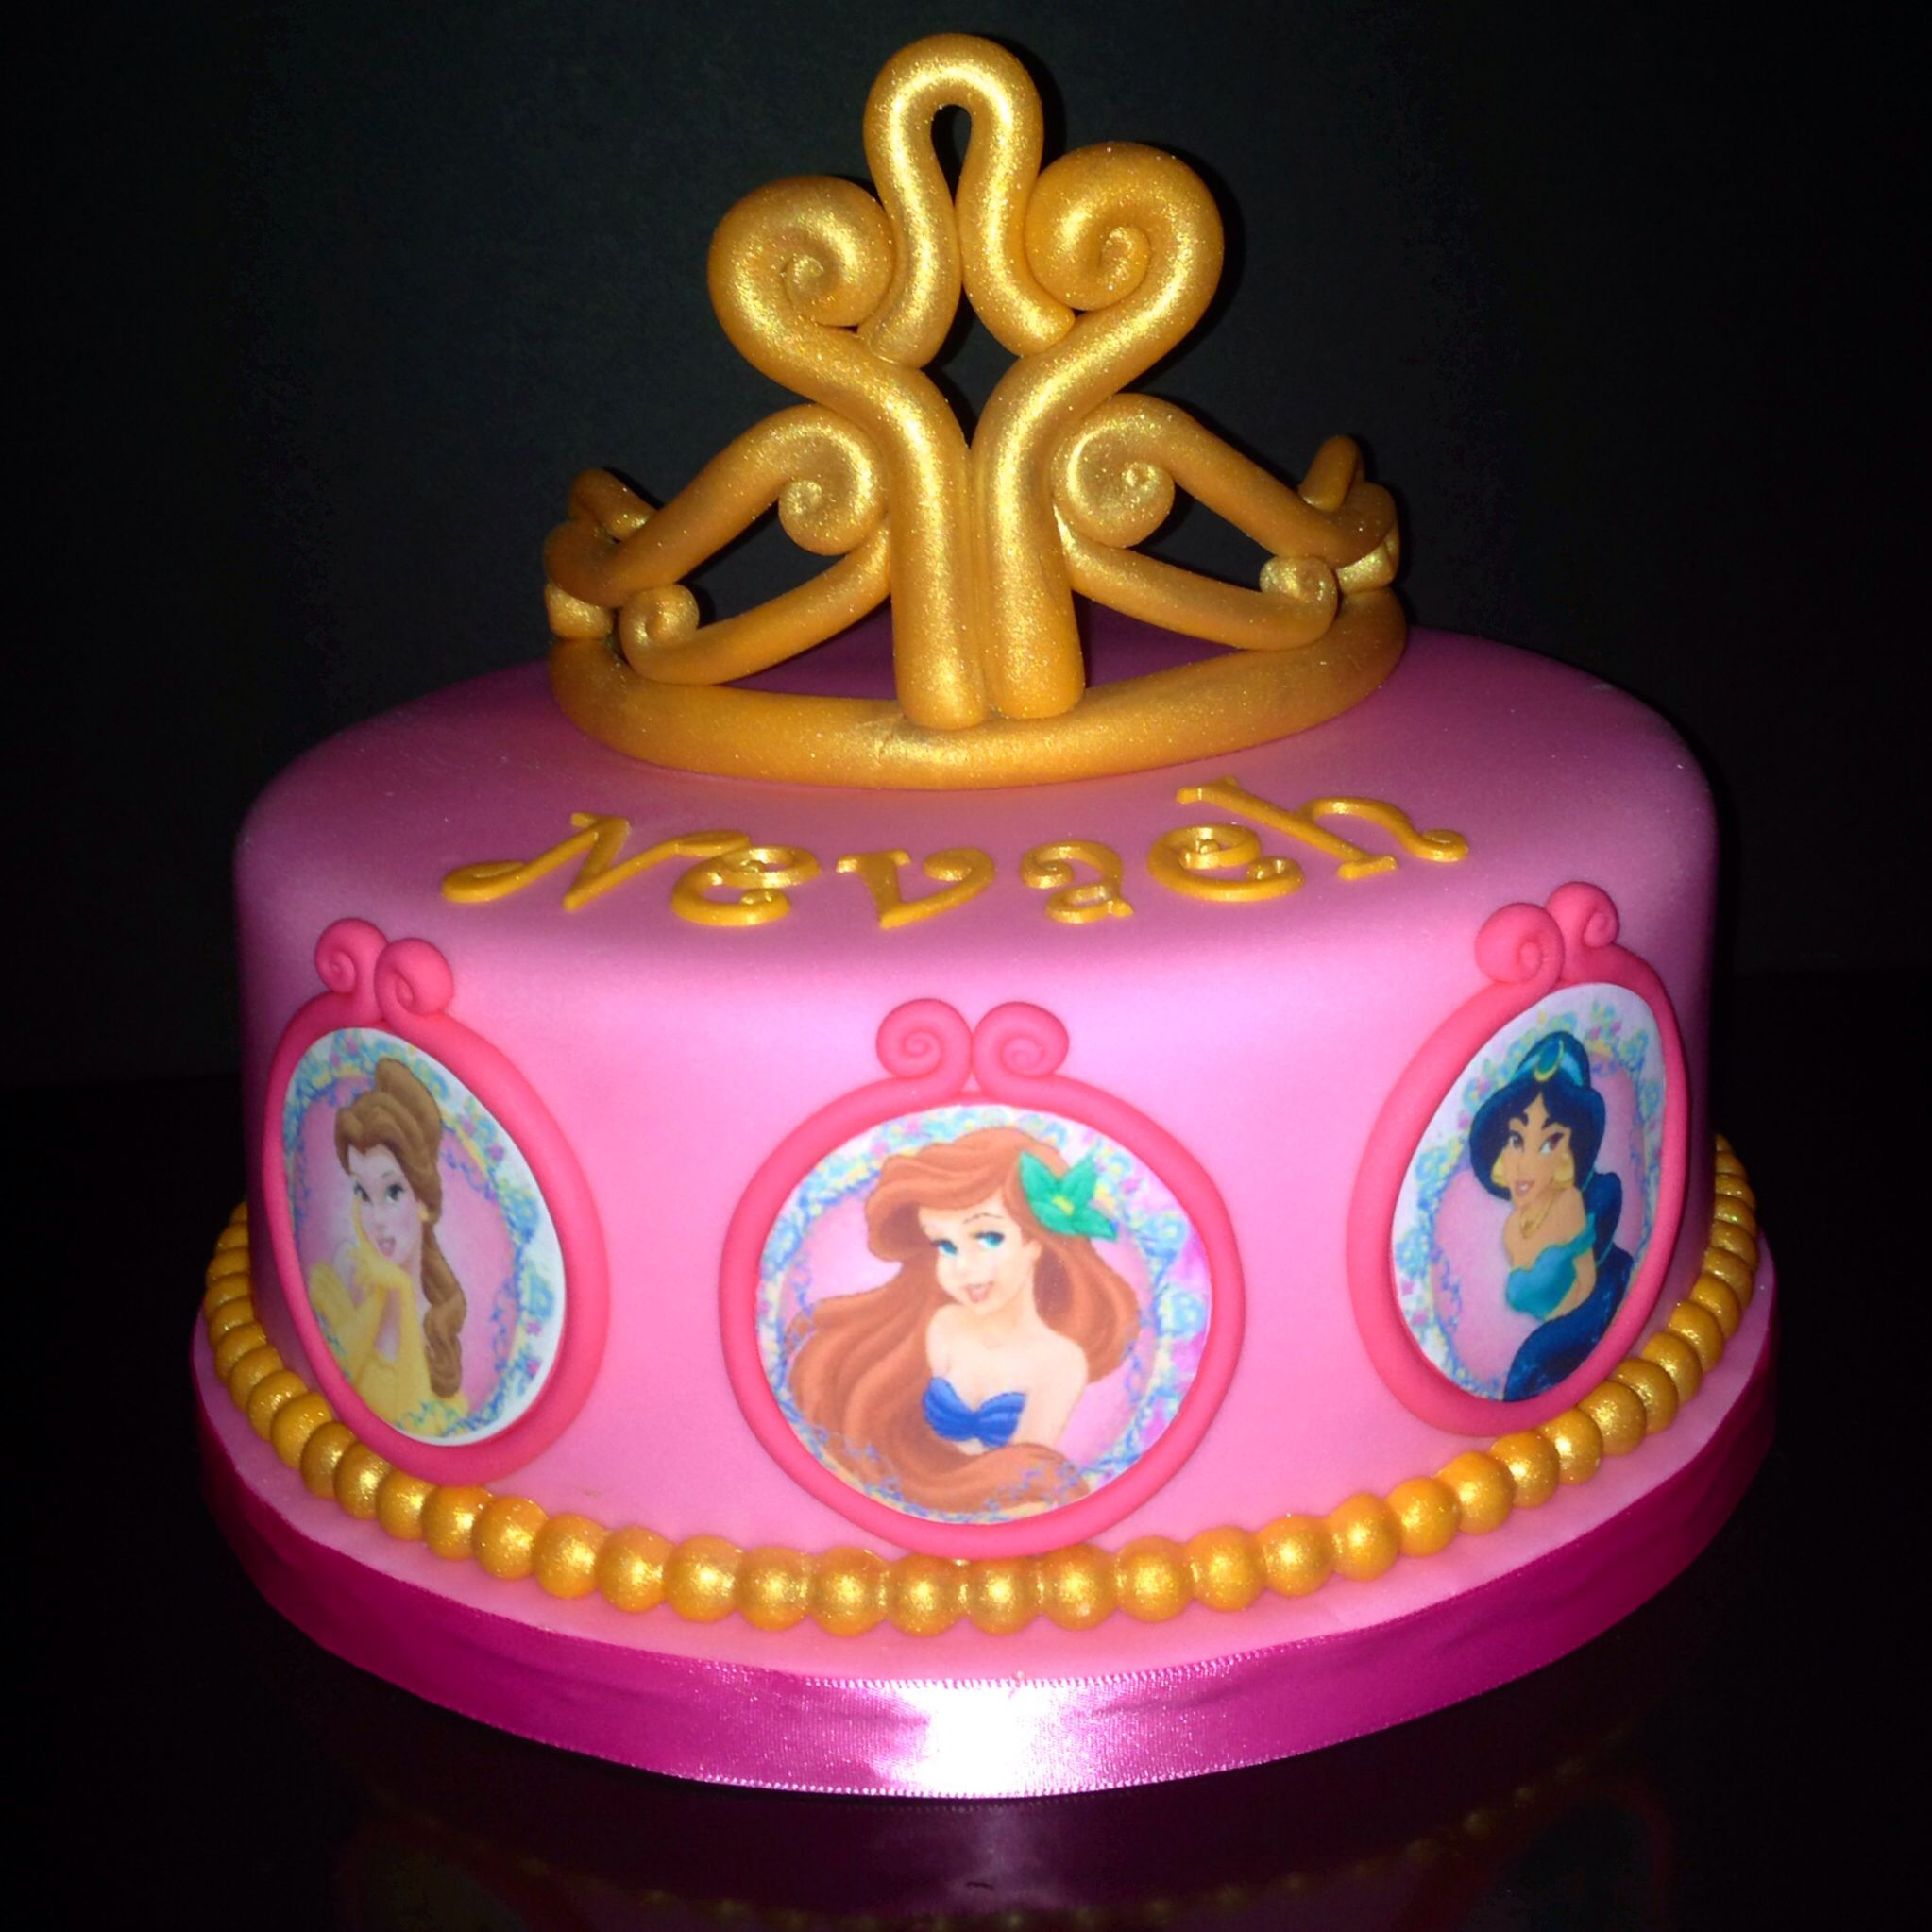 Disney Princesses Cake my cake design Pinterest Princess